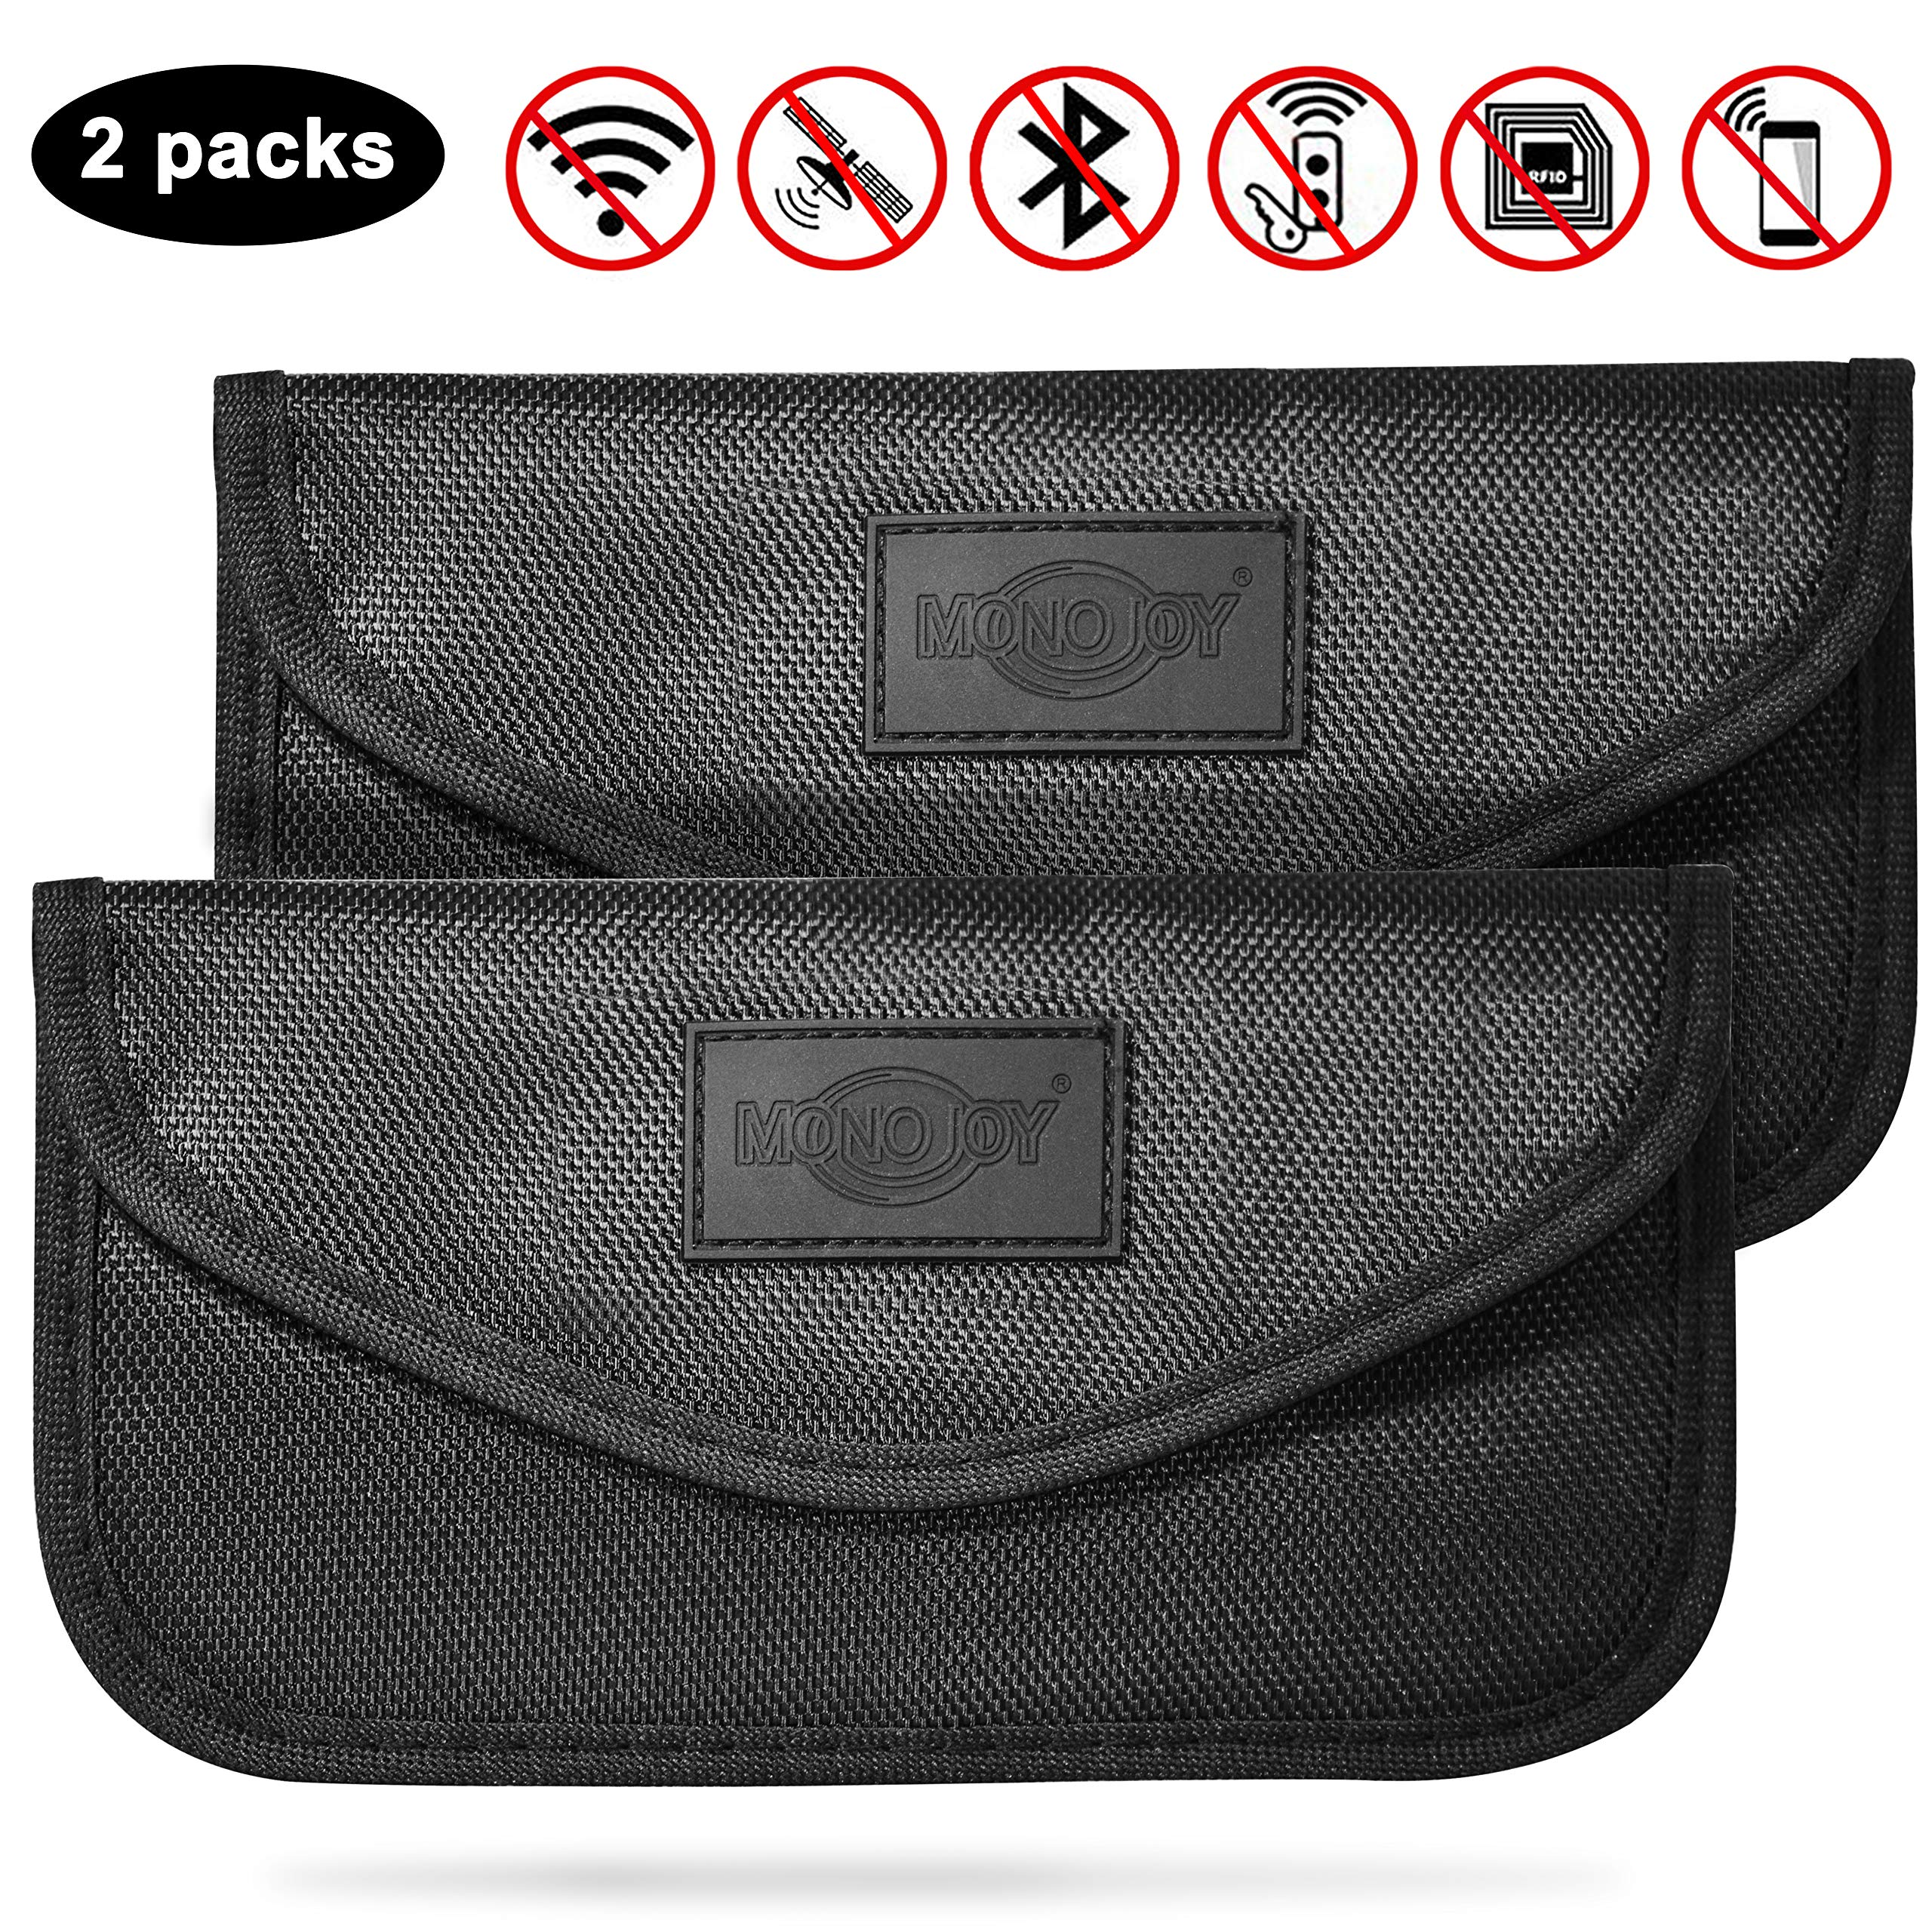 2019 NEW SAMFOLK Mini Faraday Bag for Car Keys Car key Signal Blocker Case